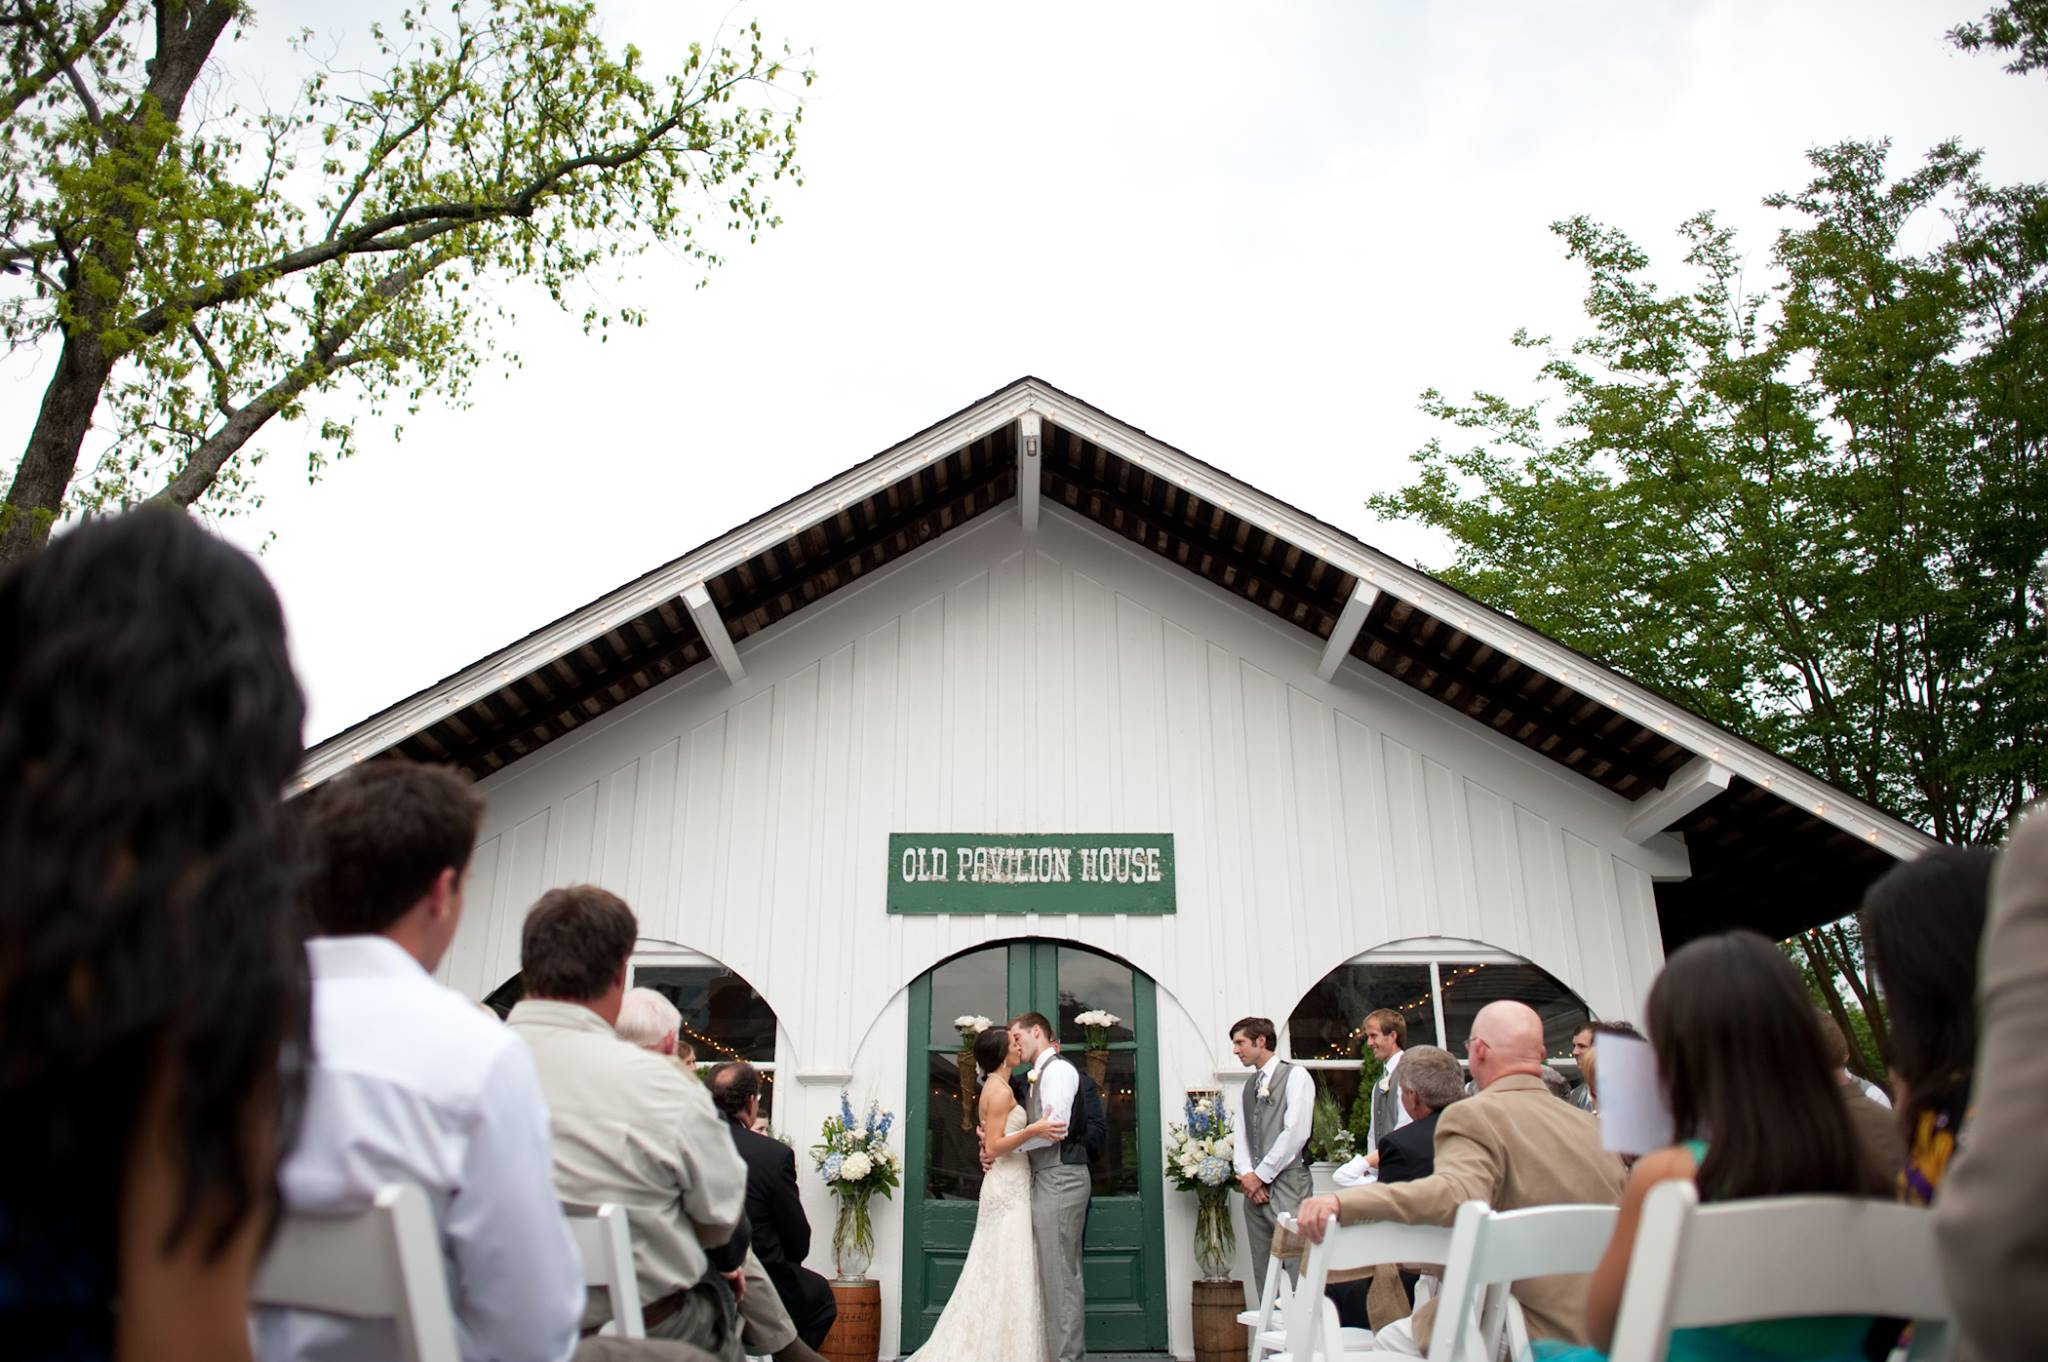 Wedding venues in atlanta on a budget the pace housethe pace house wedding venues in atlanta on a budget junglespirit